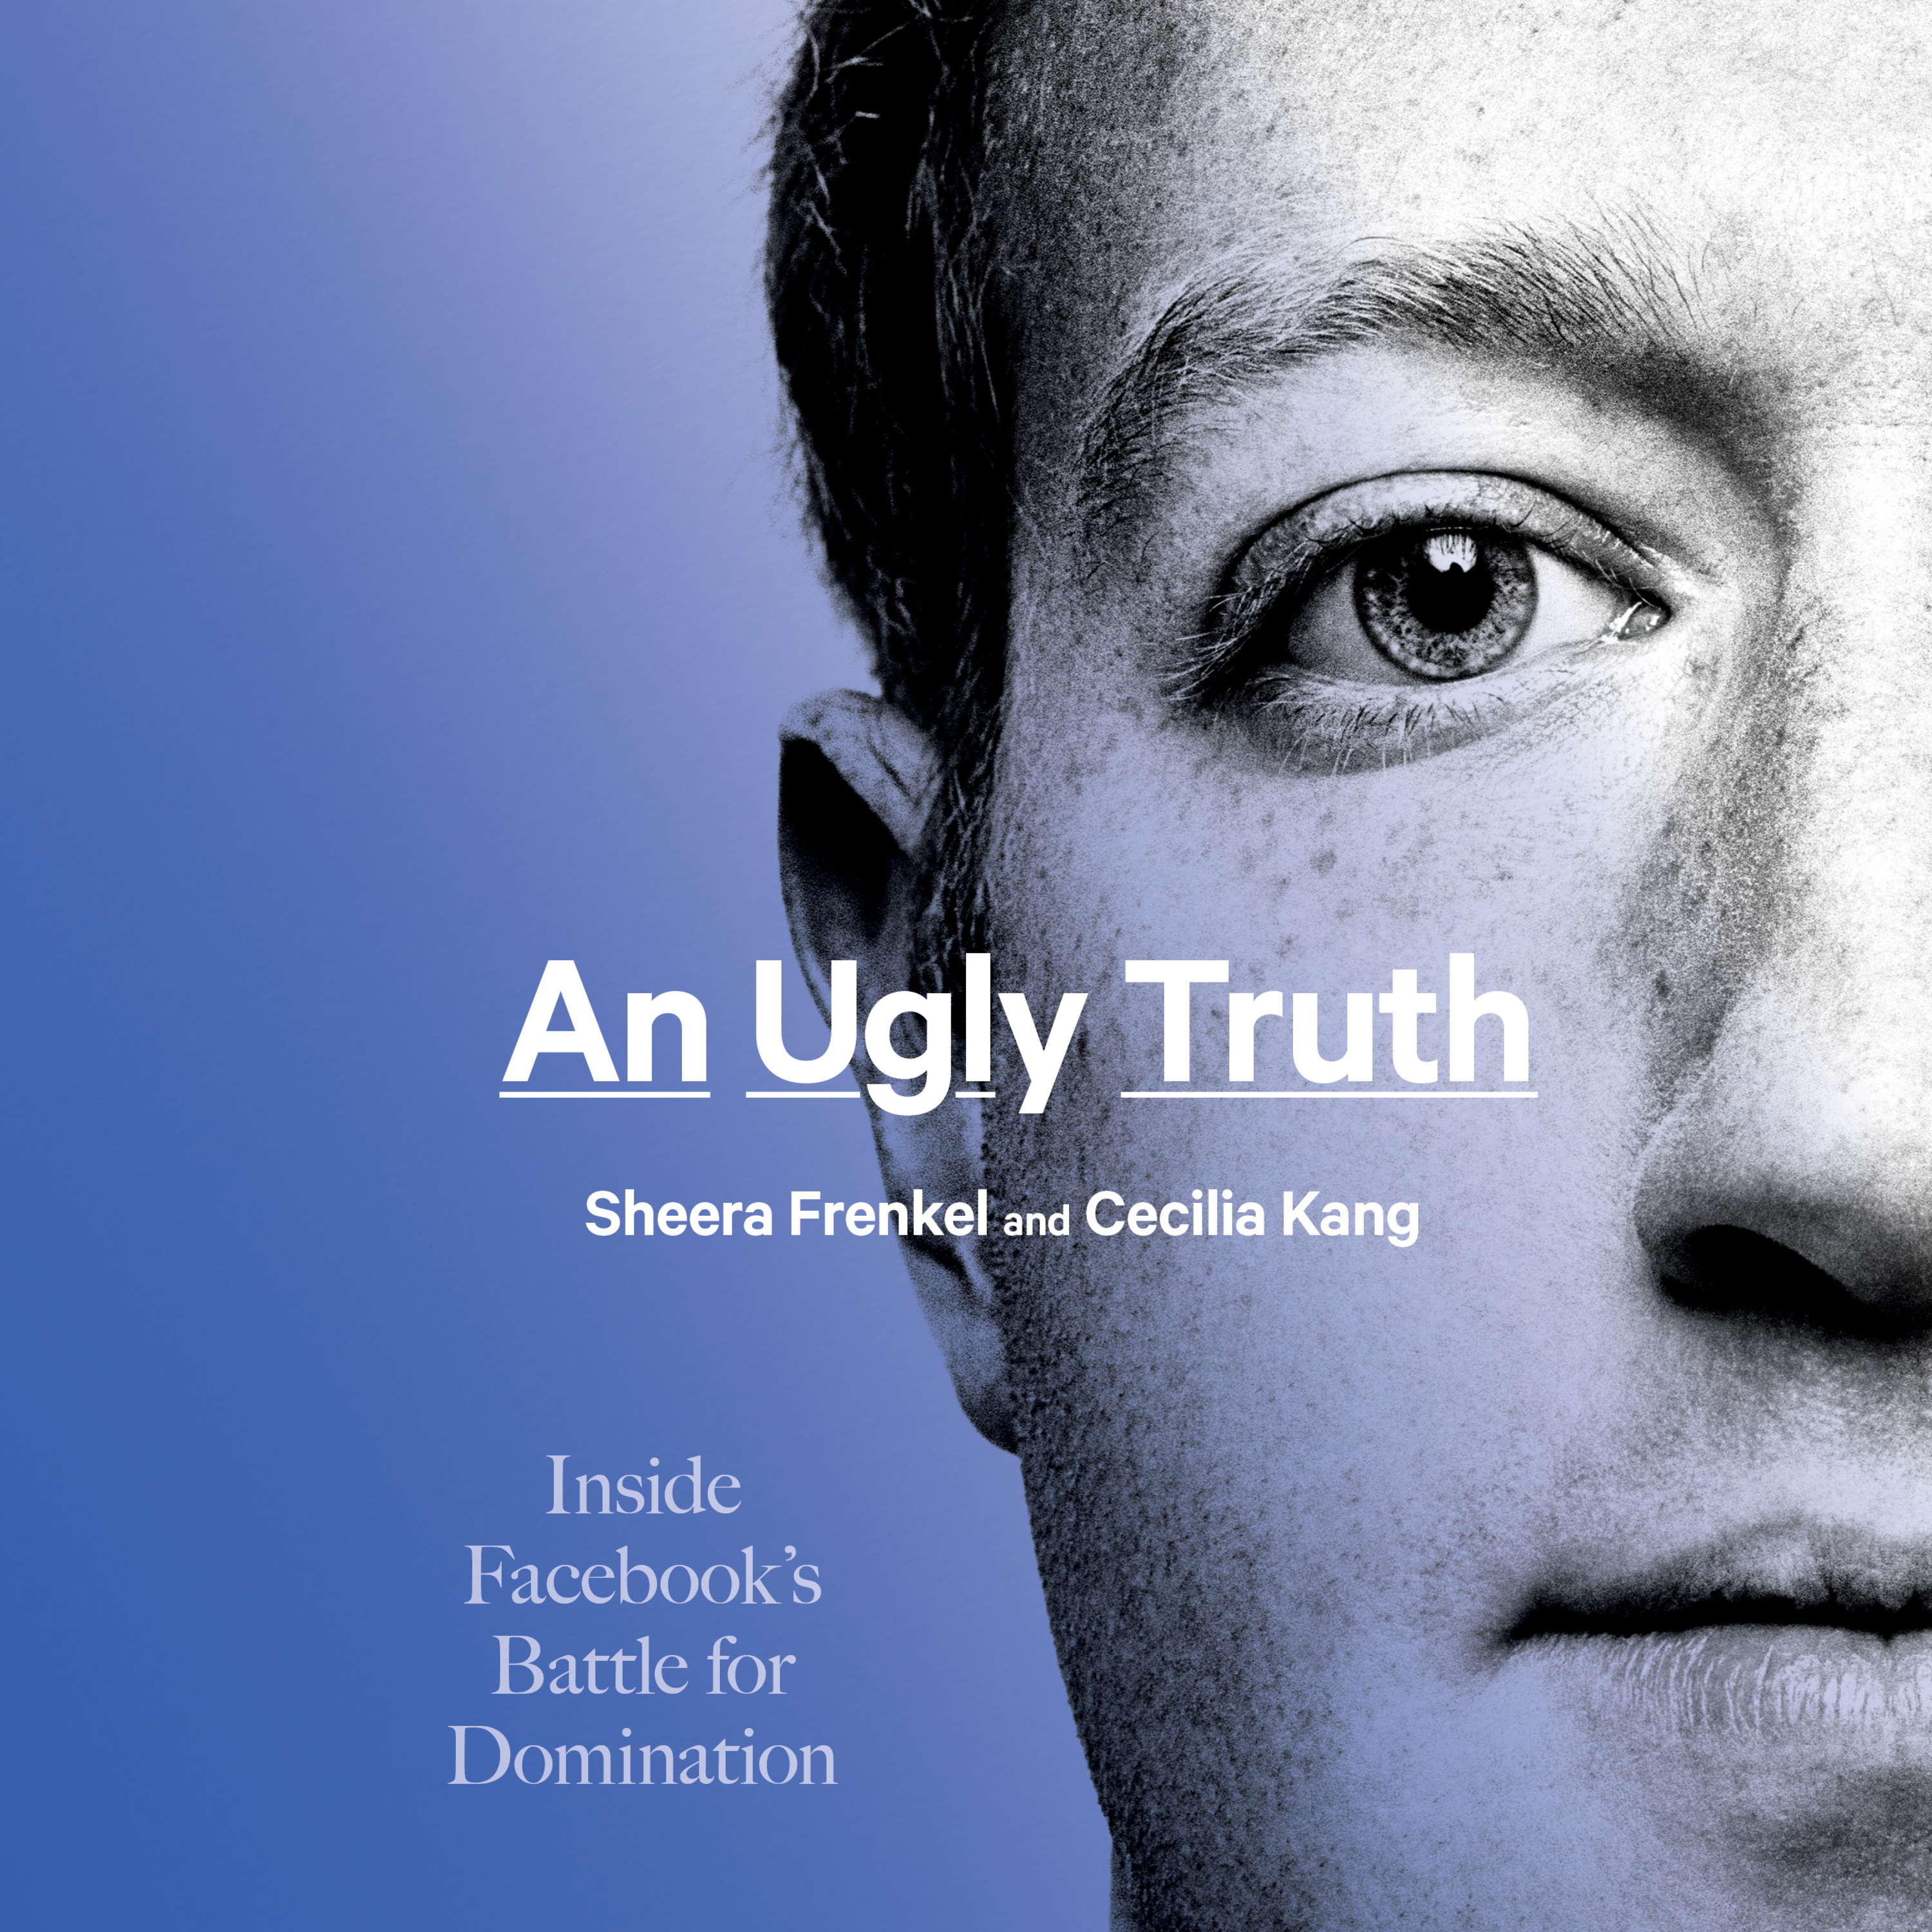 image for An Ugly Truth:  Inside Facebook's Battle for Domination